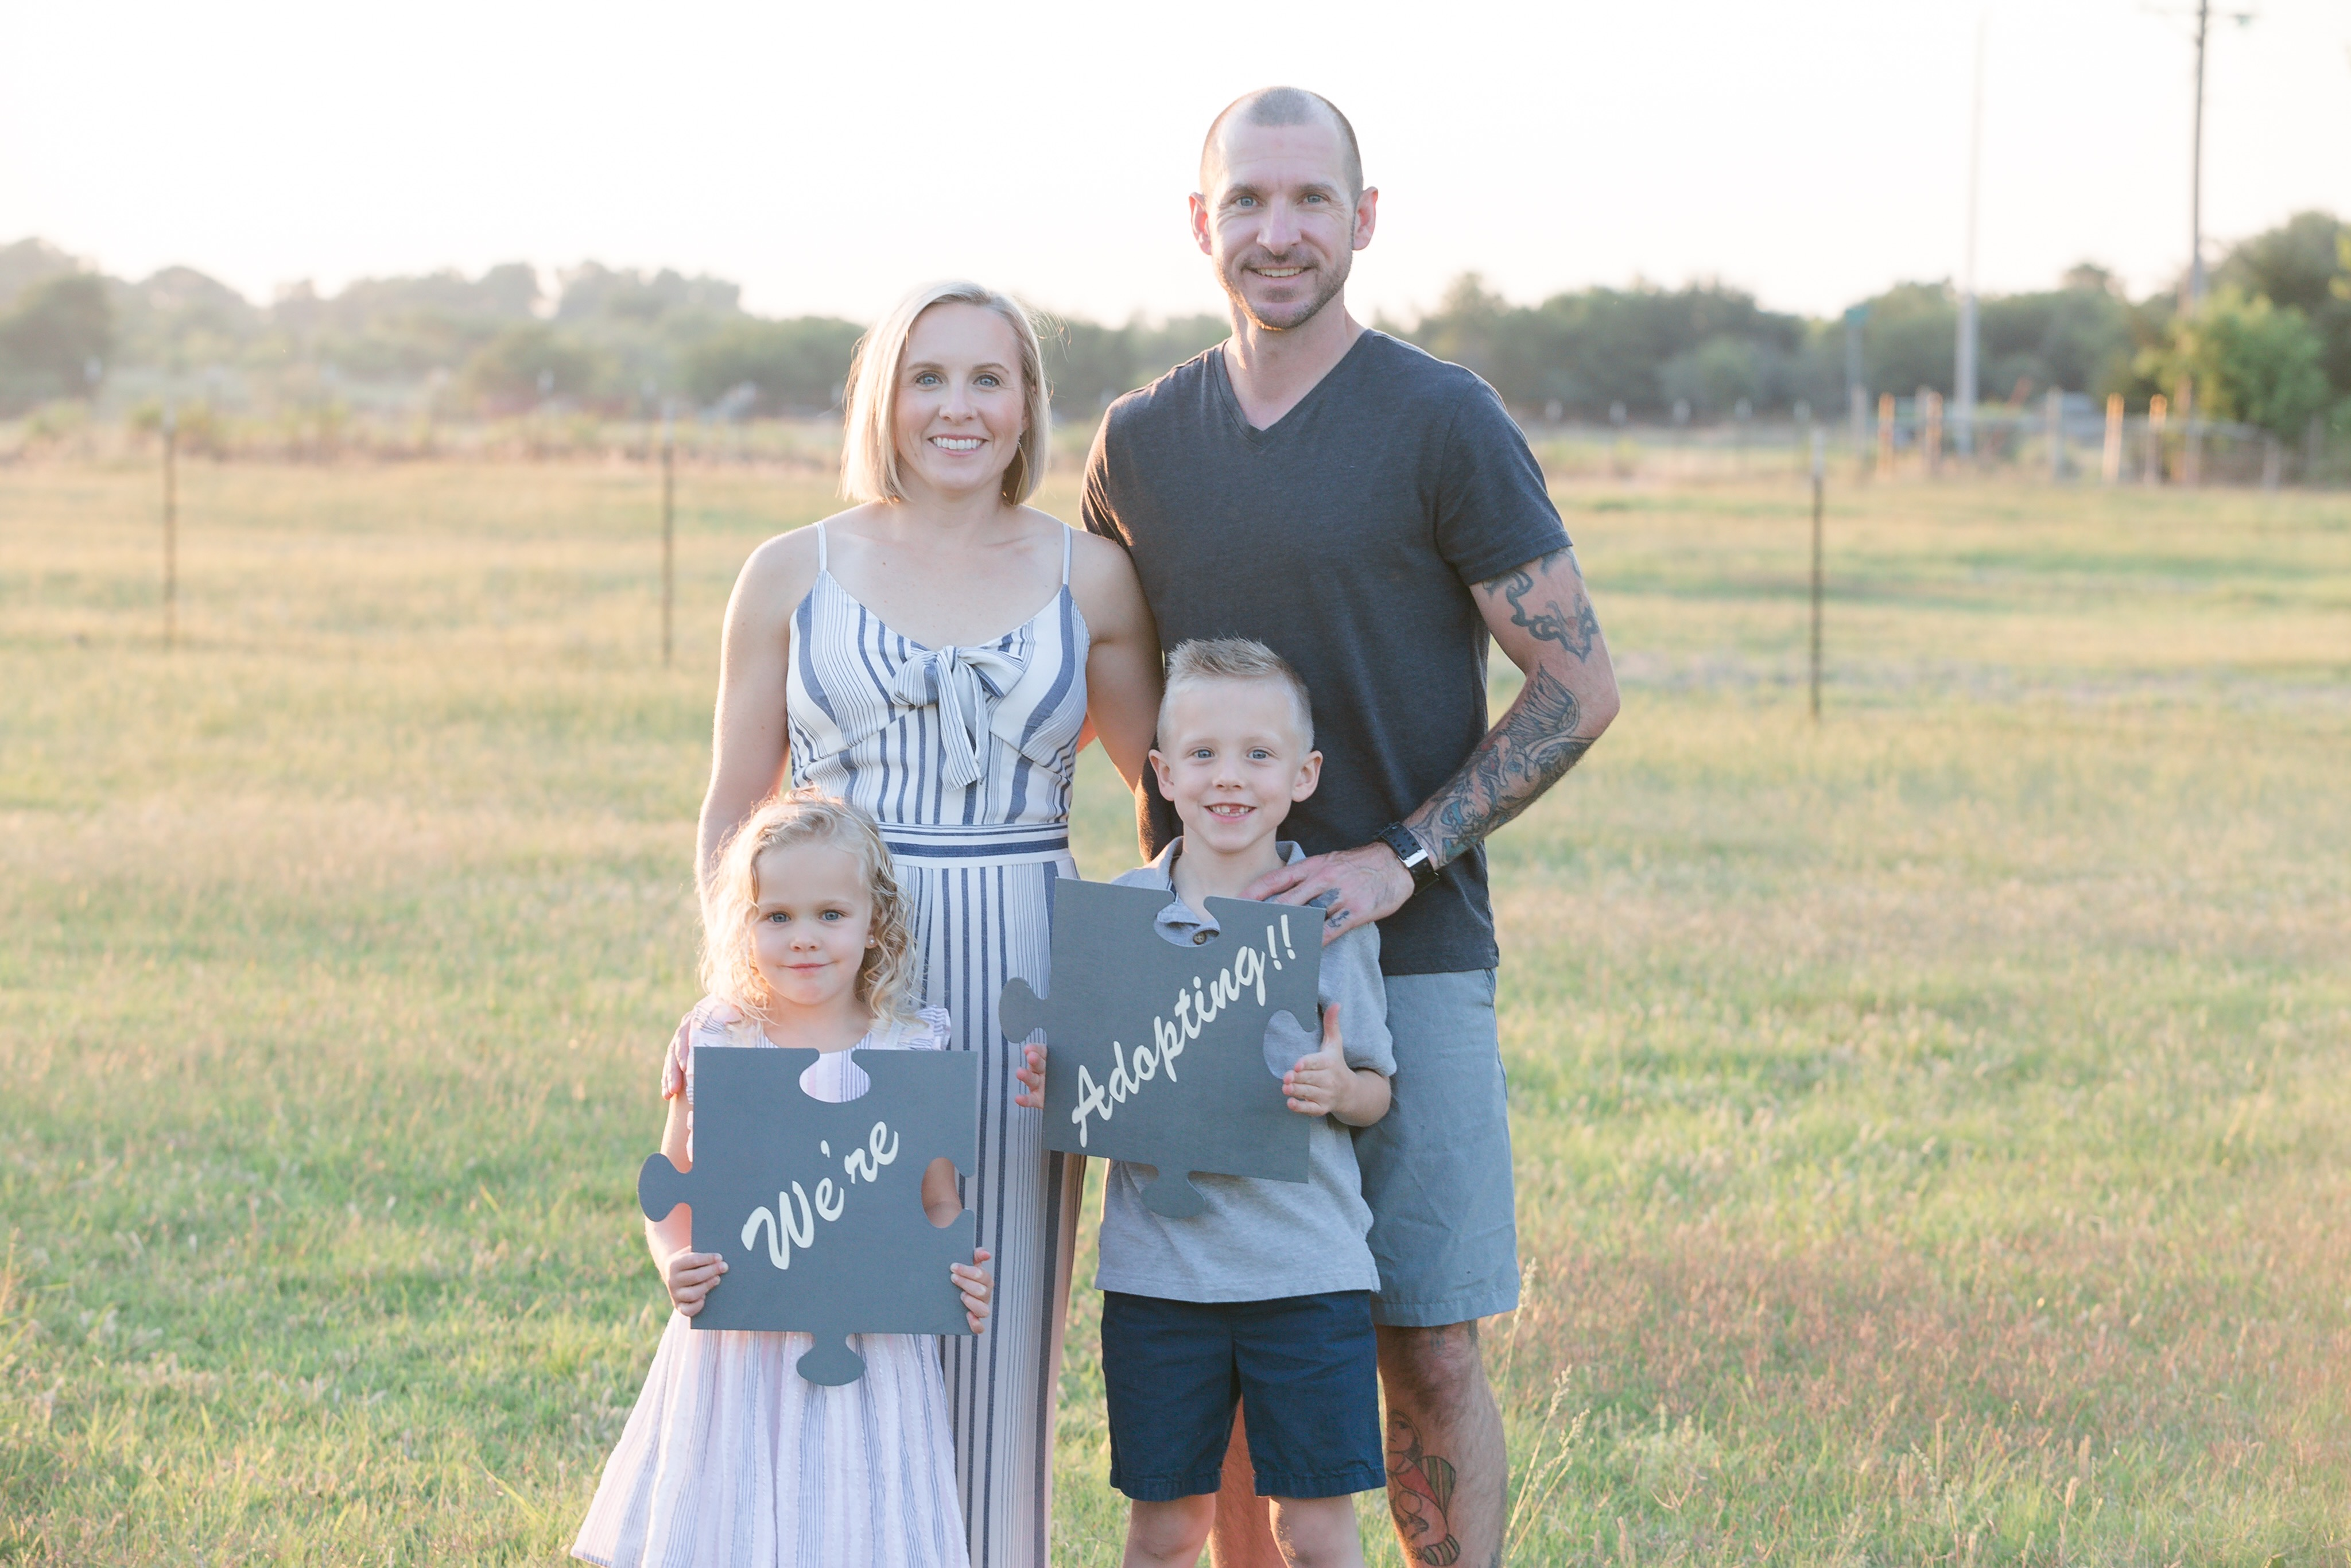 Marshall Family Adoption is raising money on AdoptTogether for their adoption from .